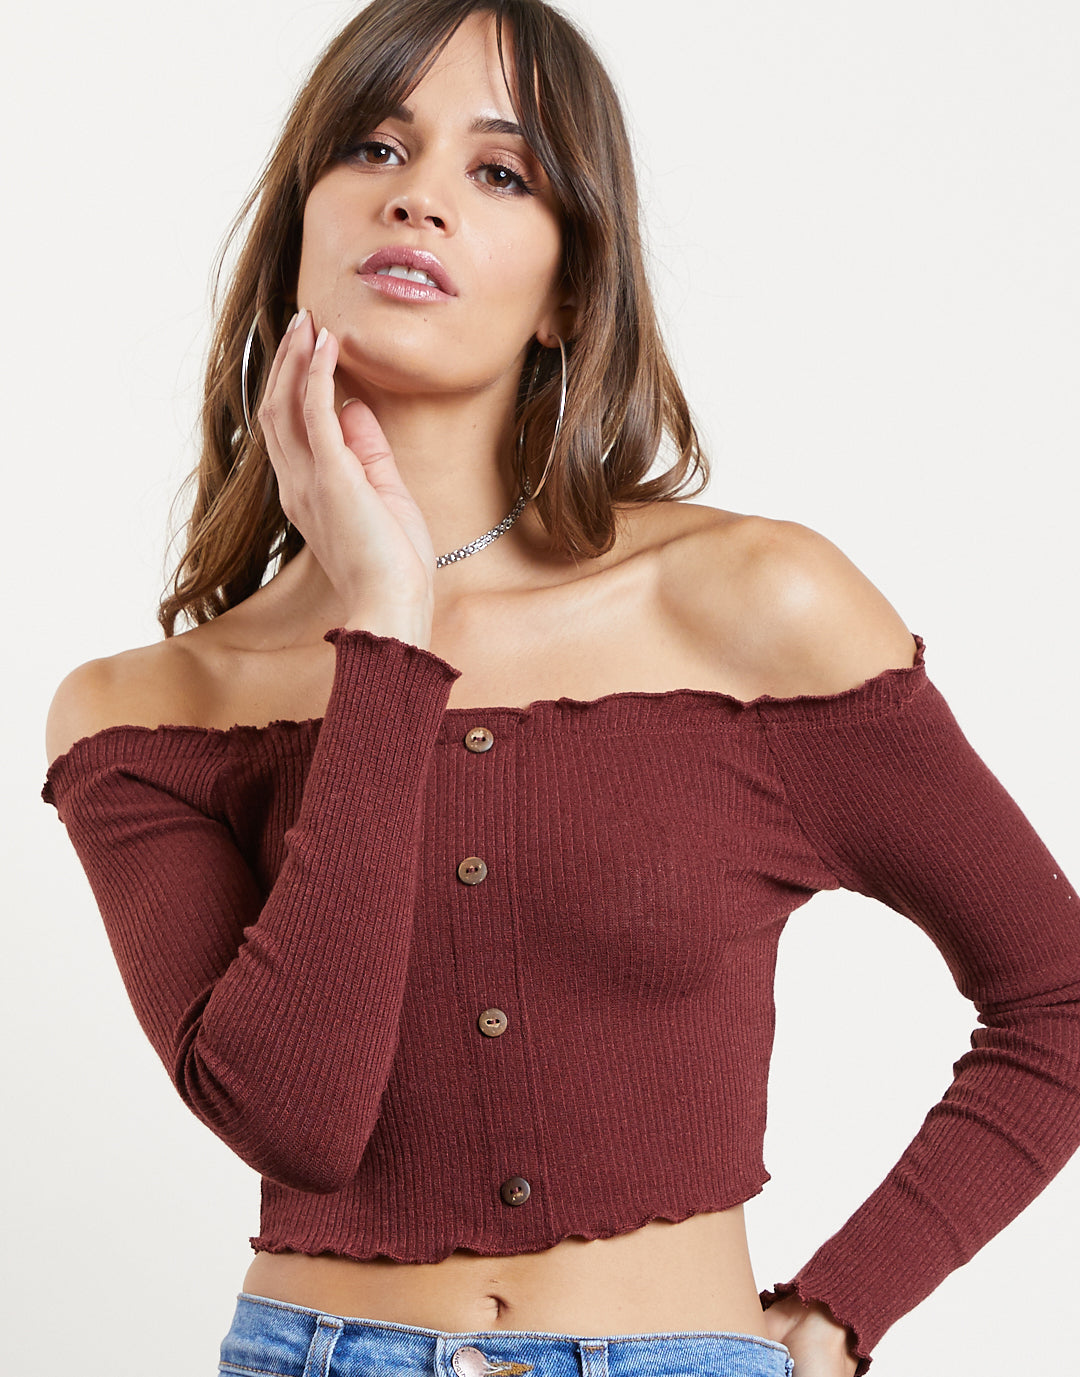 Golden Coast Frilly Top